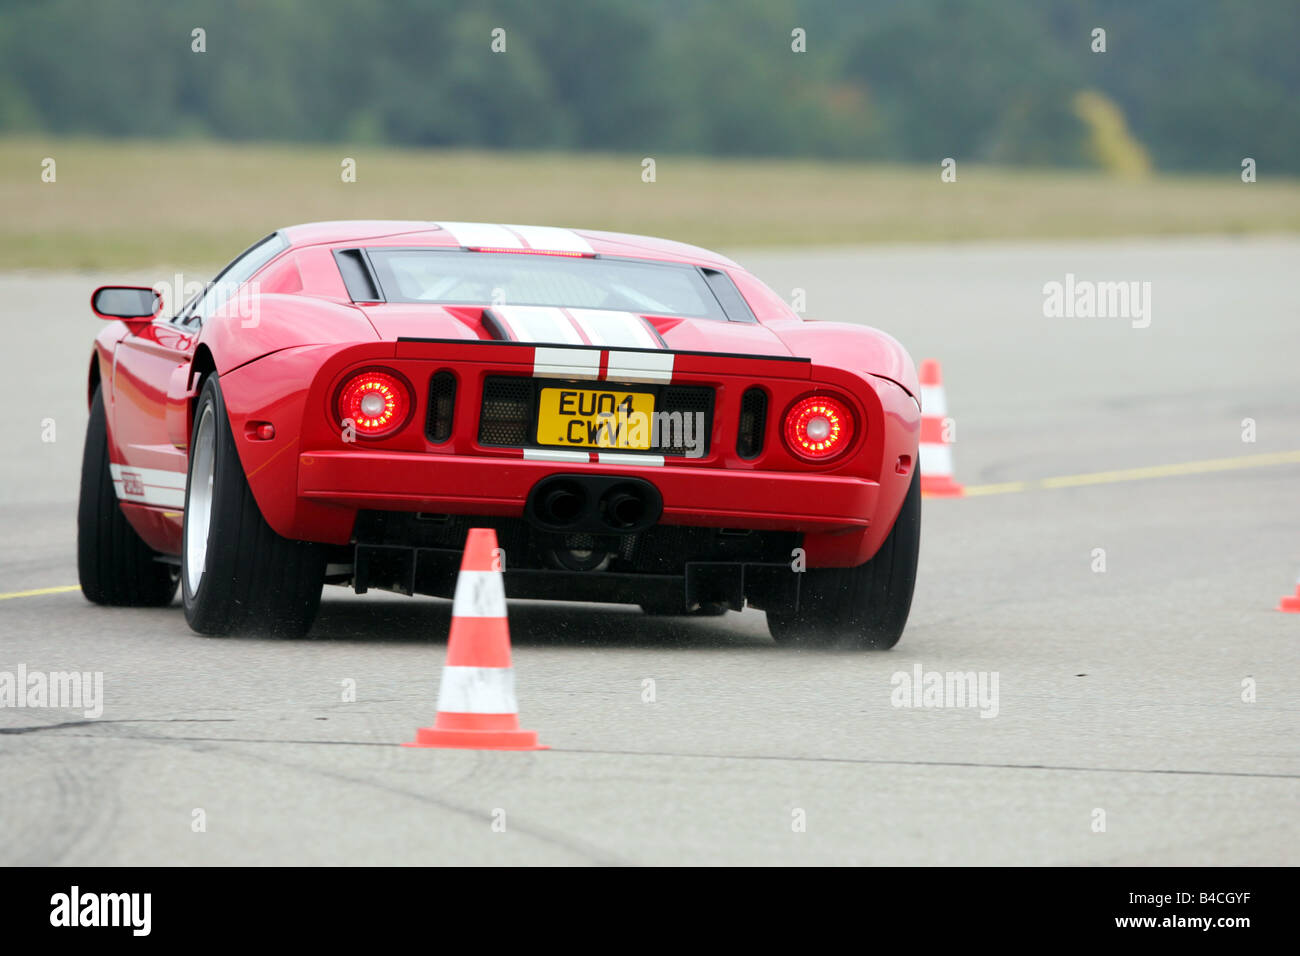 Ford Gt Model Year  White Red Driving Diagonal From The Back Rear View Test Track Pilonen